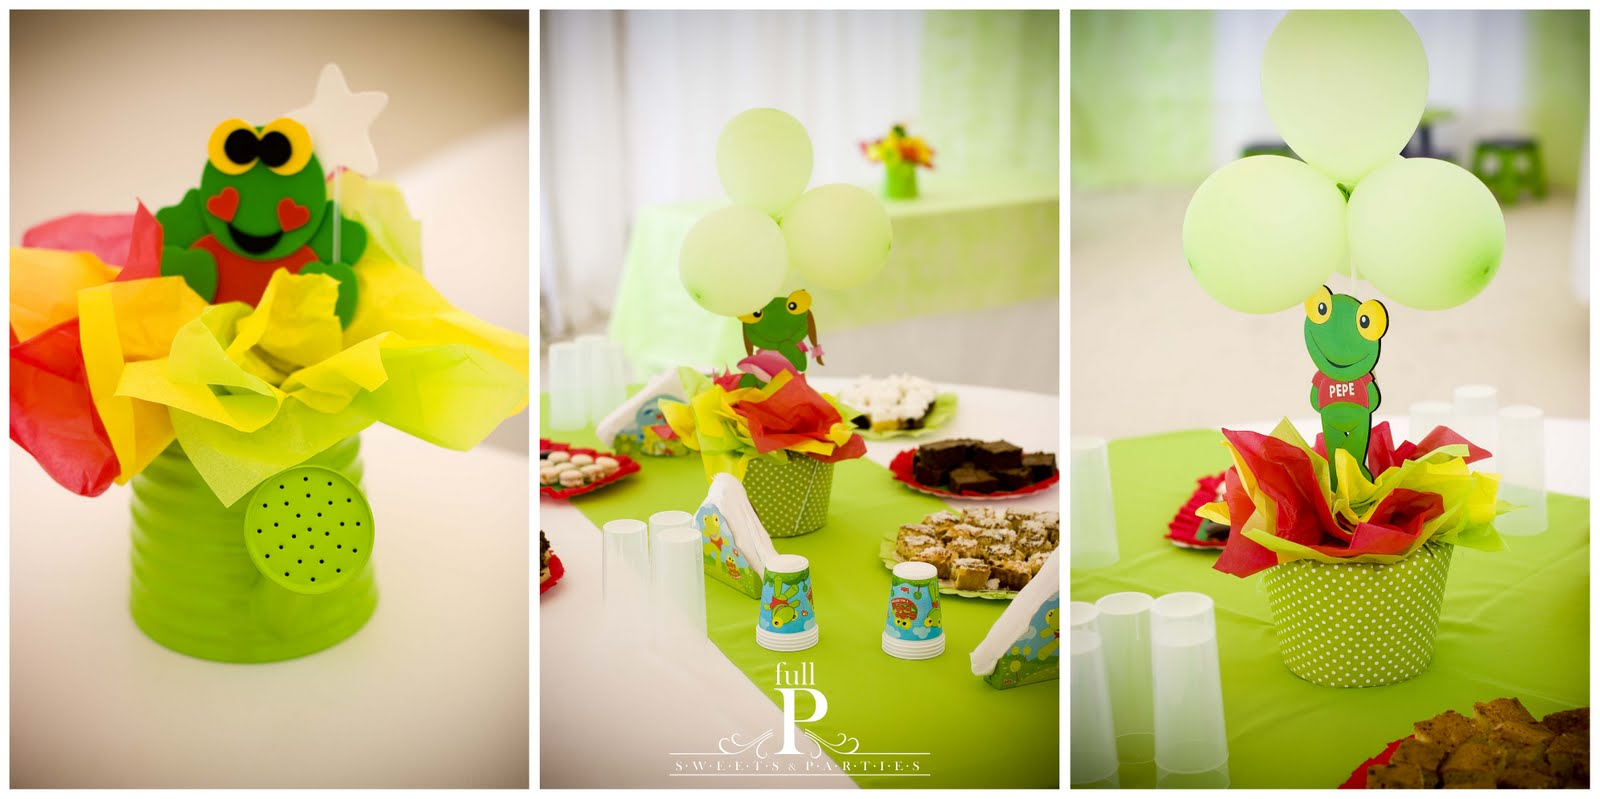 Full P - sweets & parties: Cumple Abril - Sapo Pepe y Sapa Pepa